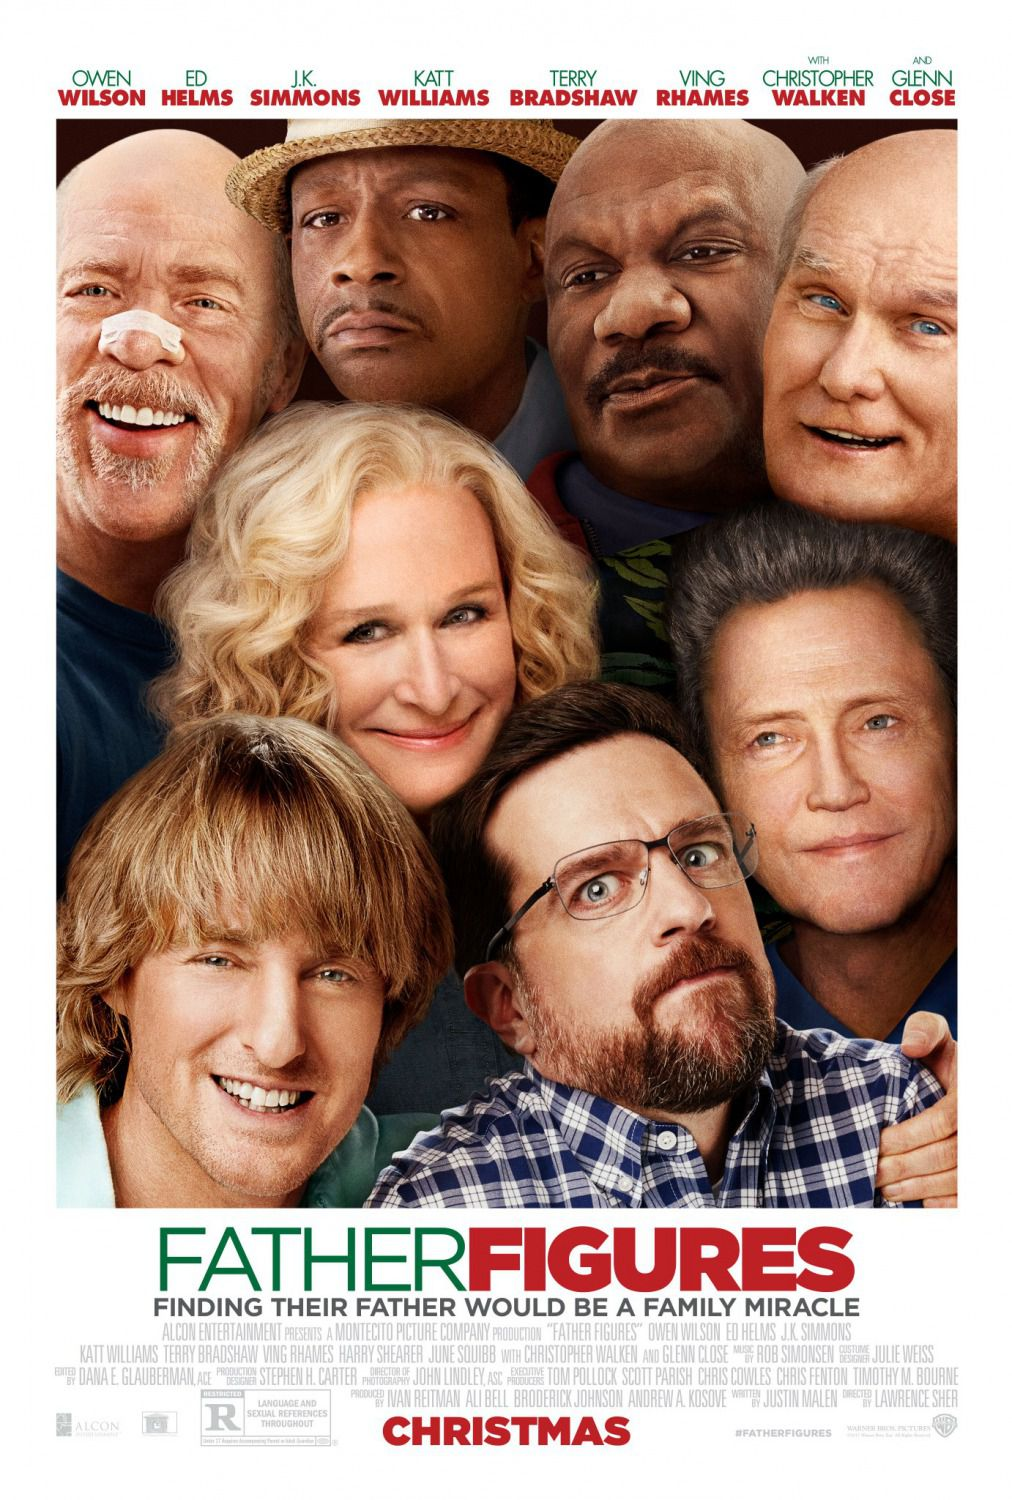 Father Figures - Bastards - Ed Helms, Owen Wilson, J.K. Simmons, Terry Bradshaw